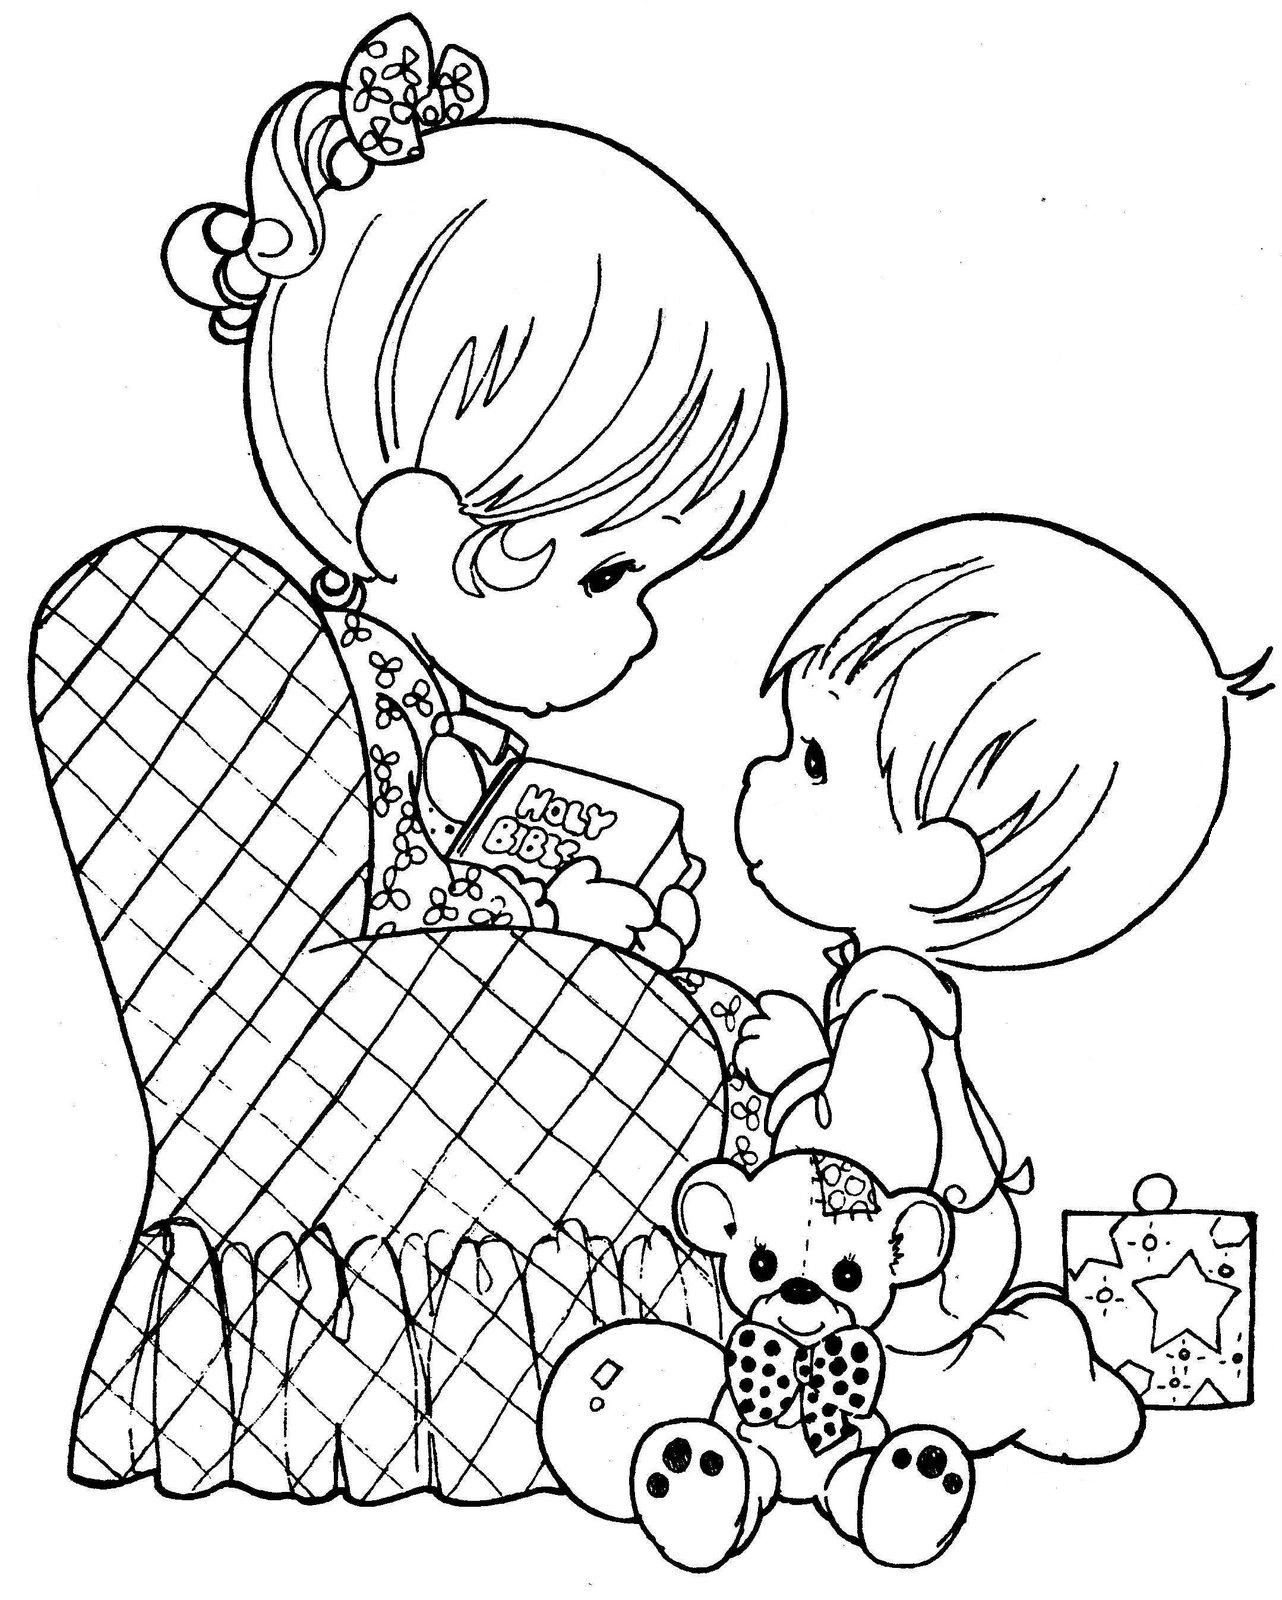 Precious Moments Coloring Book Pages to Print Gallery 2o - Save it to your computer